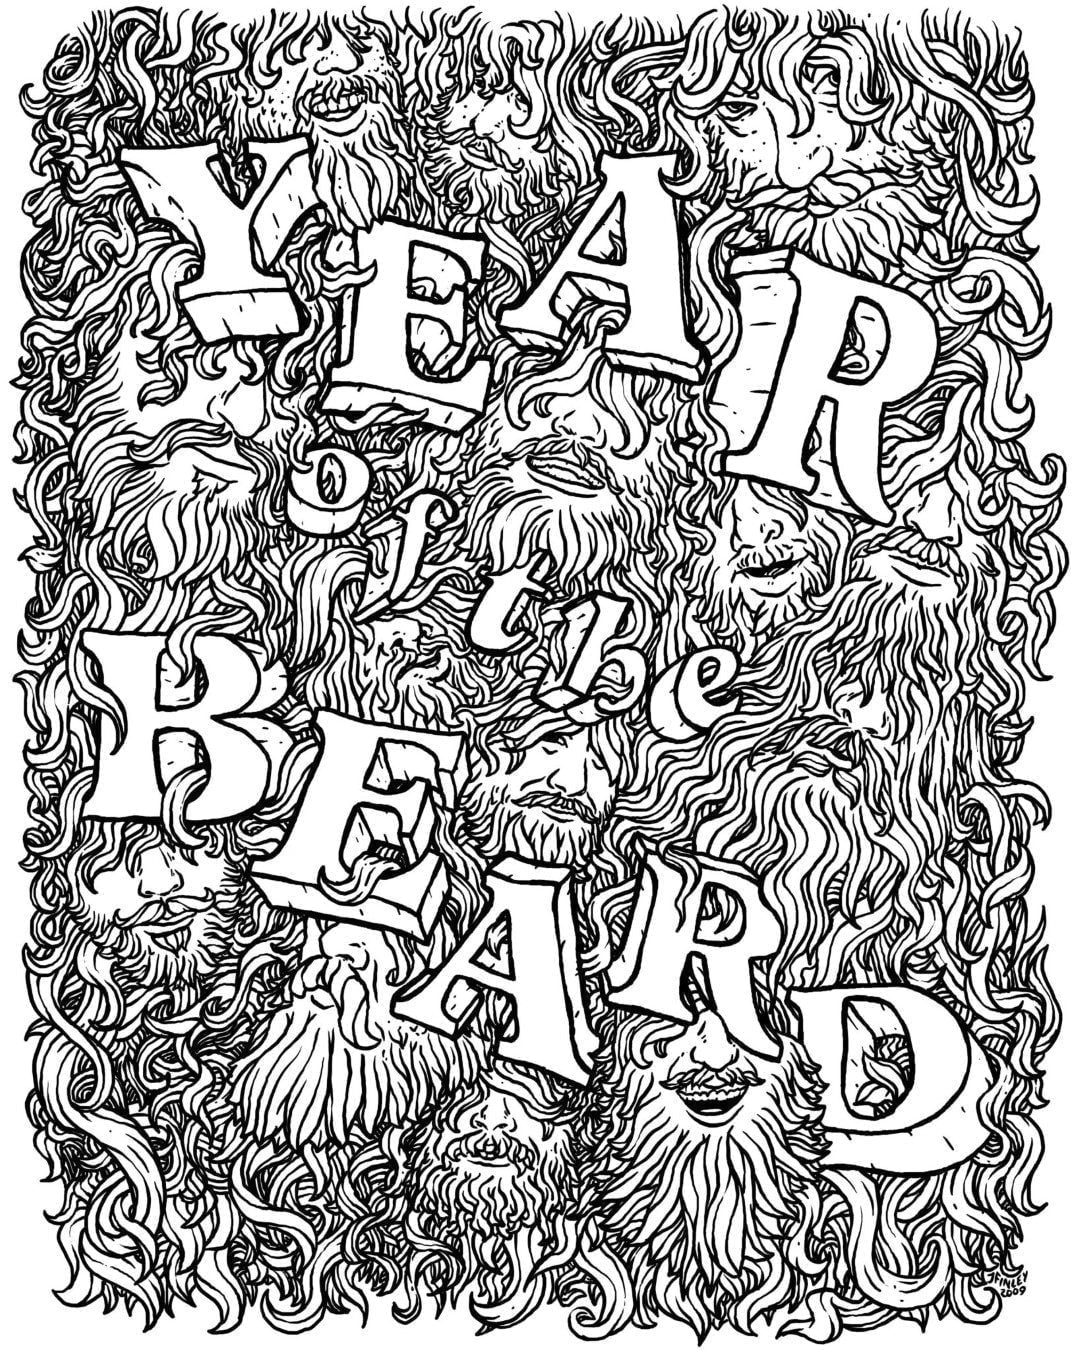 Year of the Beard